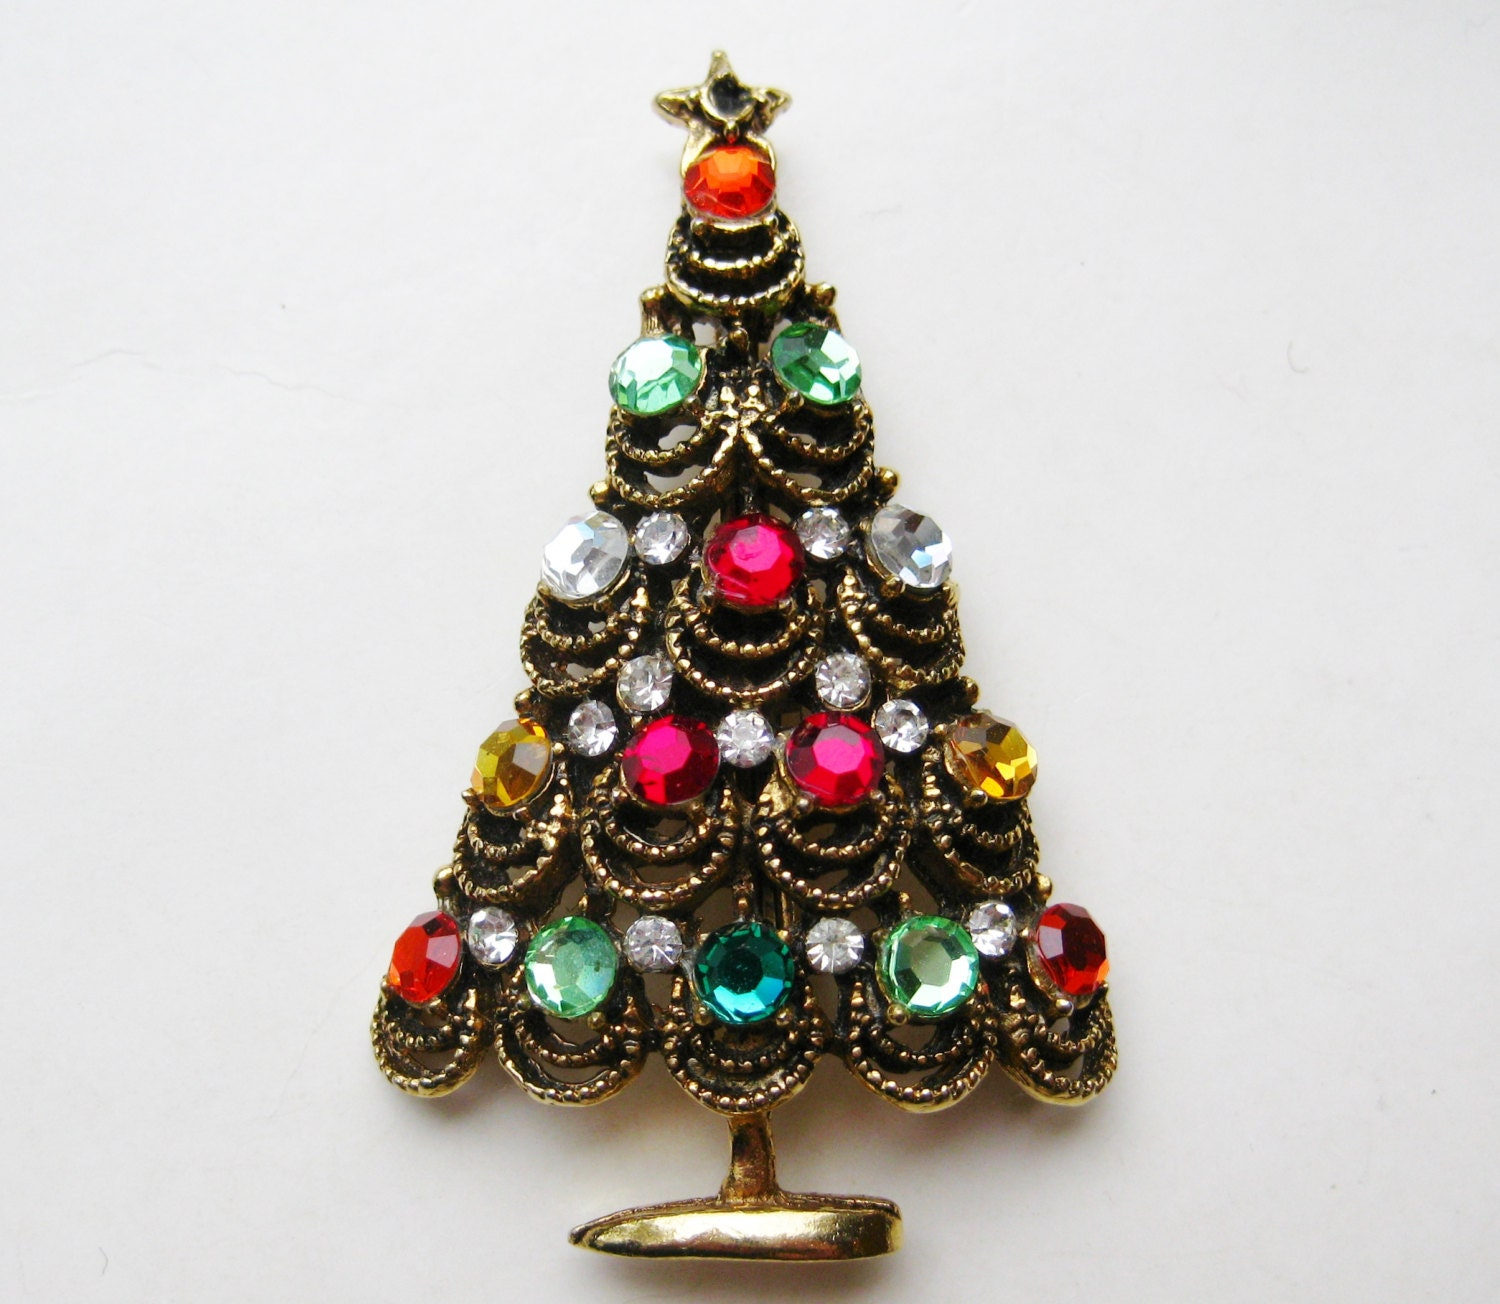 939ffb824 Vintage 50s Hollycraft Jeweled Rhinestone Gold Christmas Tree Pin ...